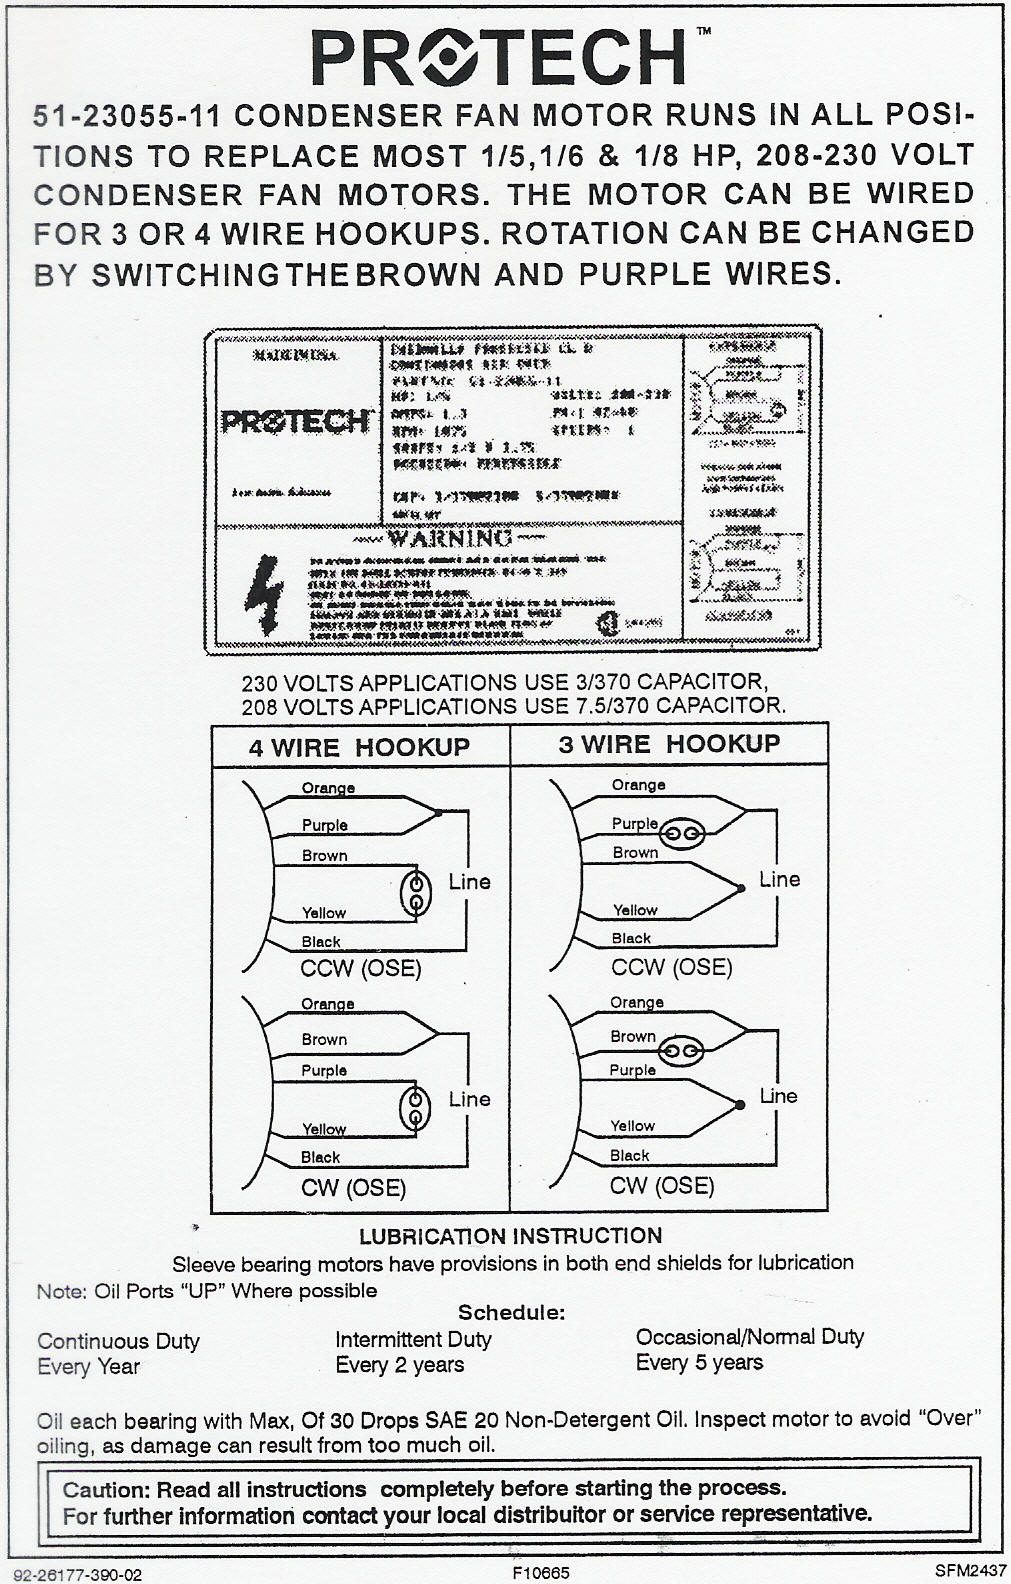 51 23055 11 wiring diagram rheem ruud condenser fan motor 51 23055 11 wiring diagram Basic Electrical Wiring Diagrams at soozxer.org